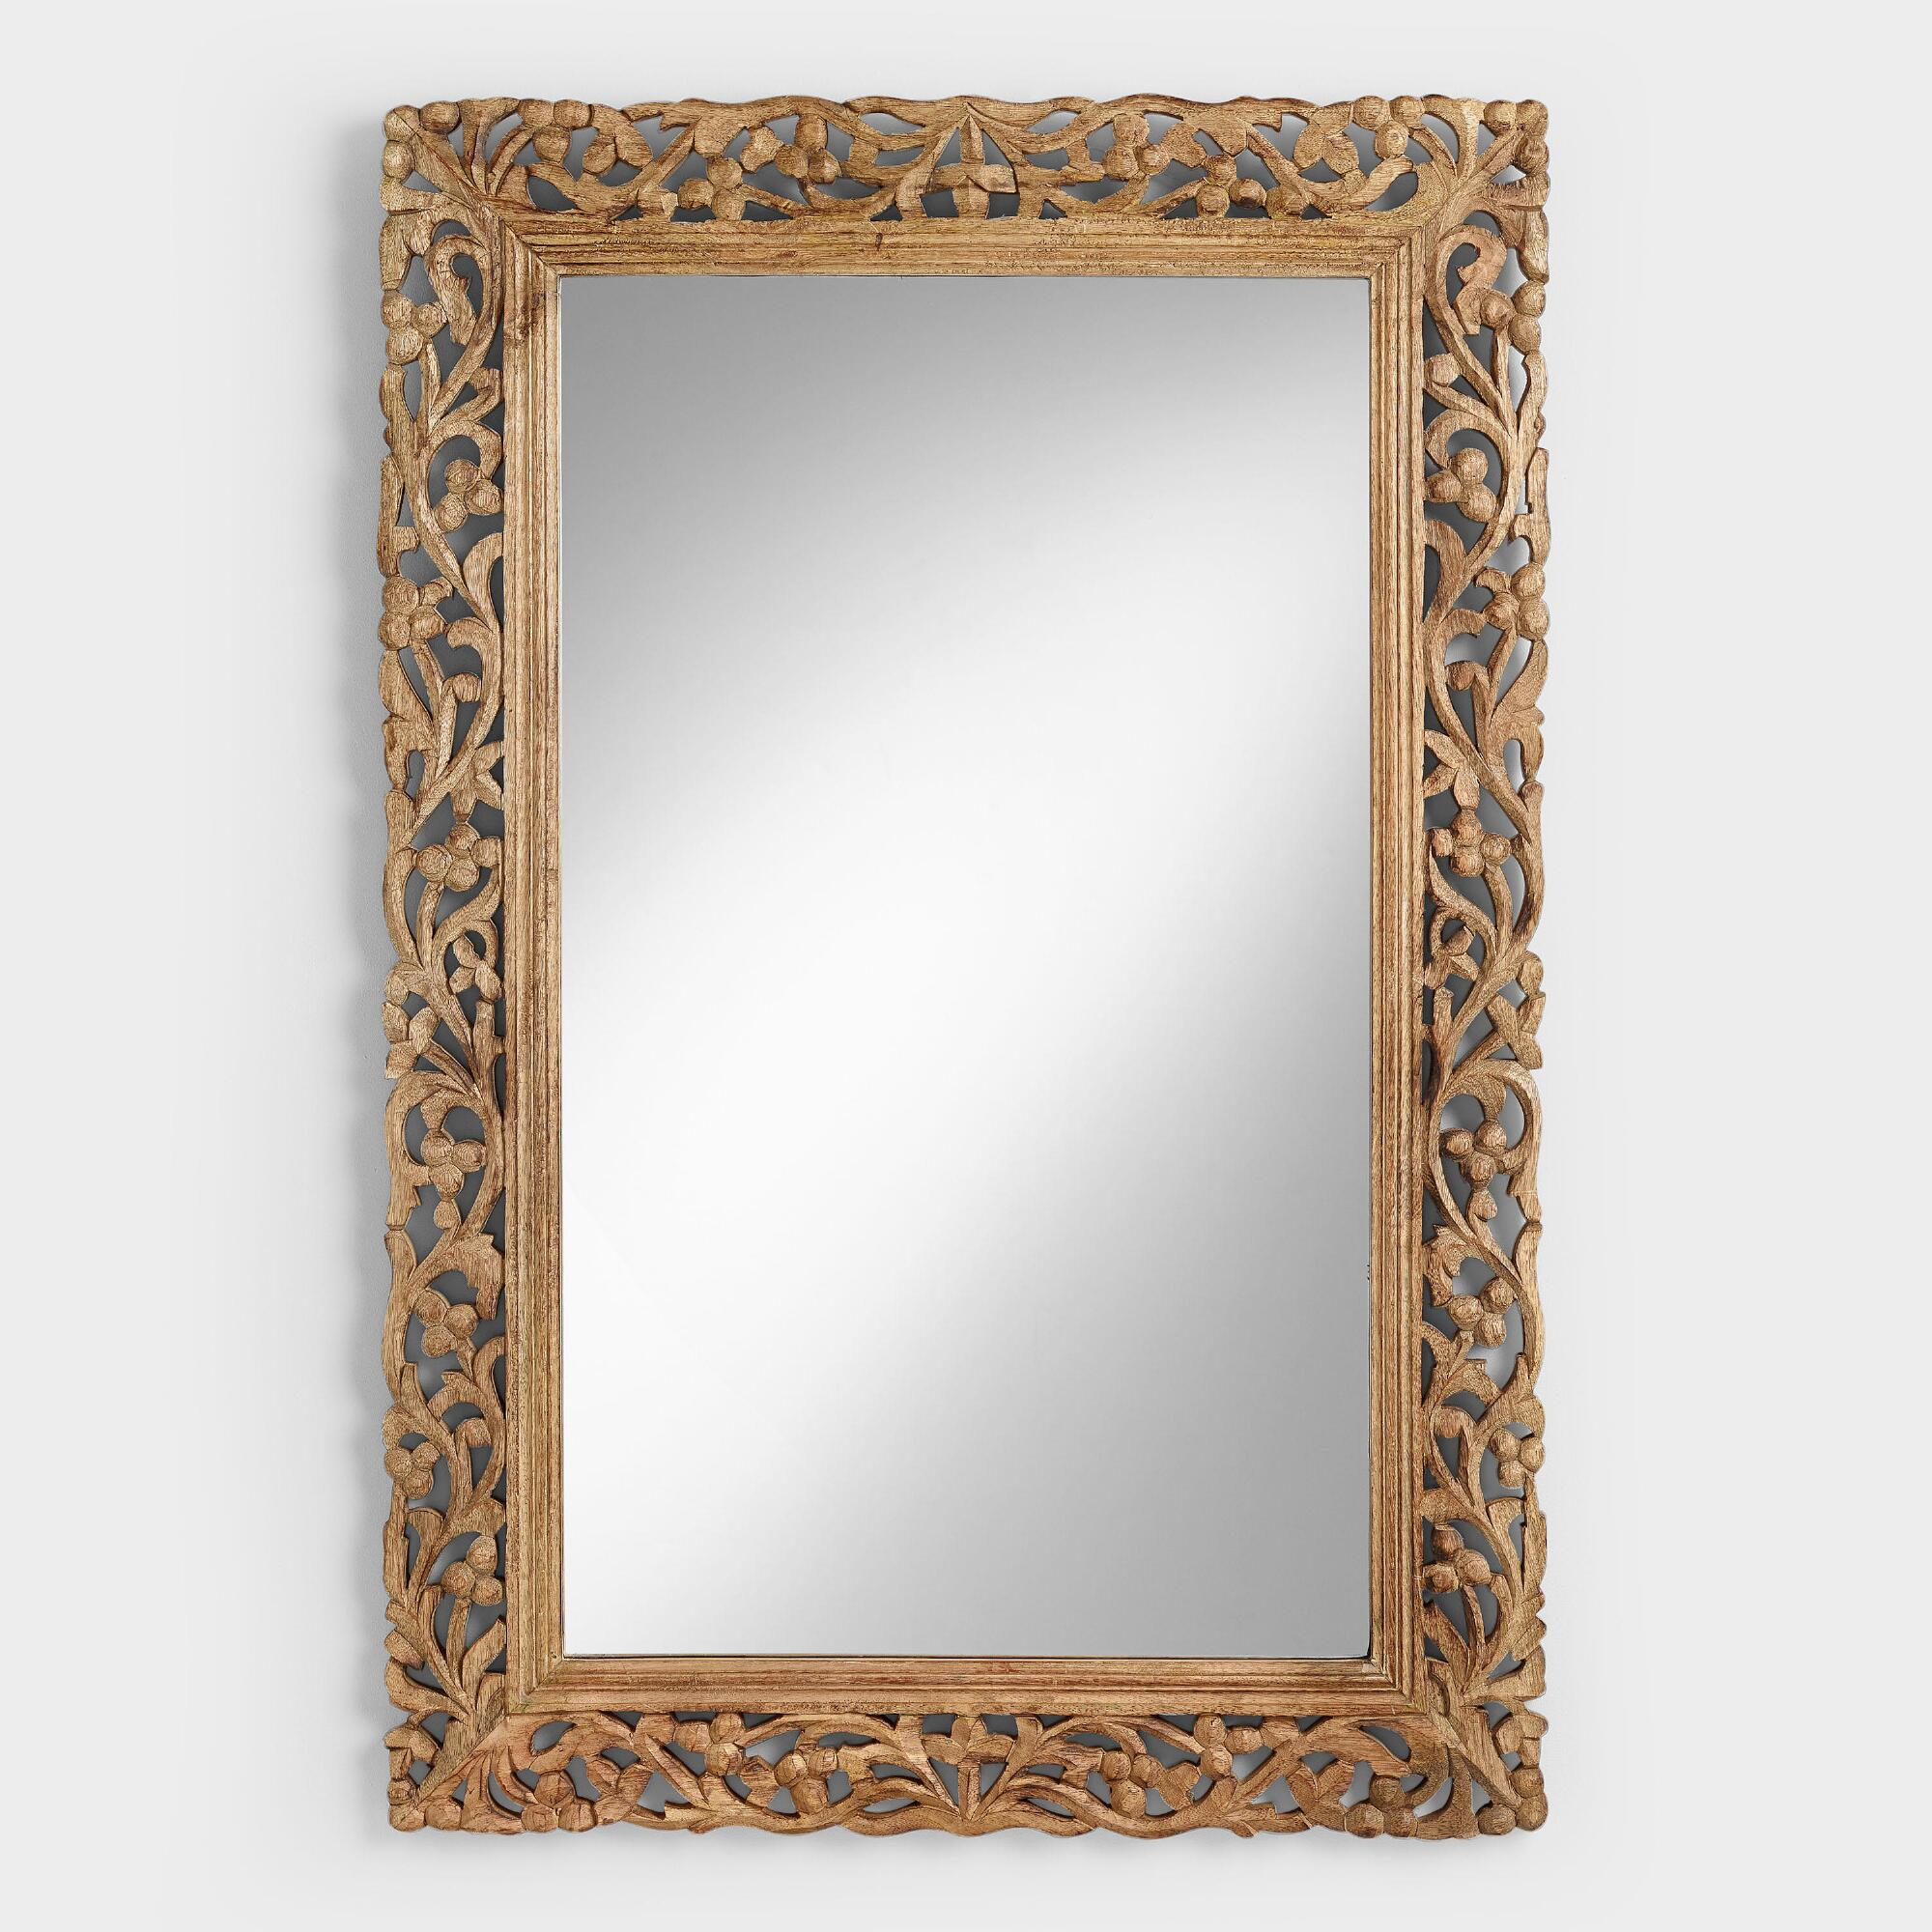 Natural Segovia Mirror - Wood - Large by World Market